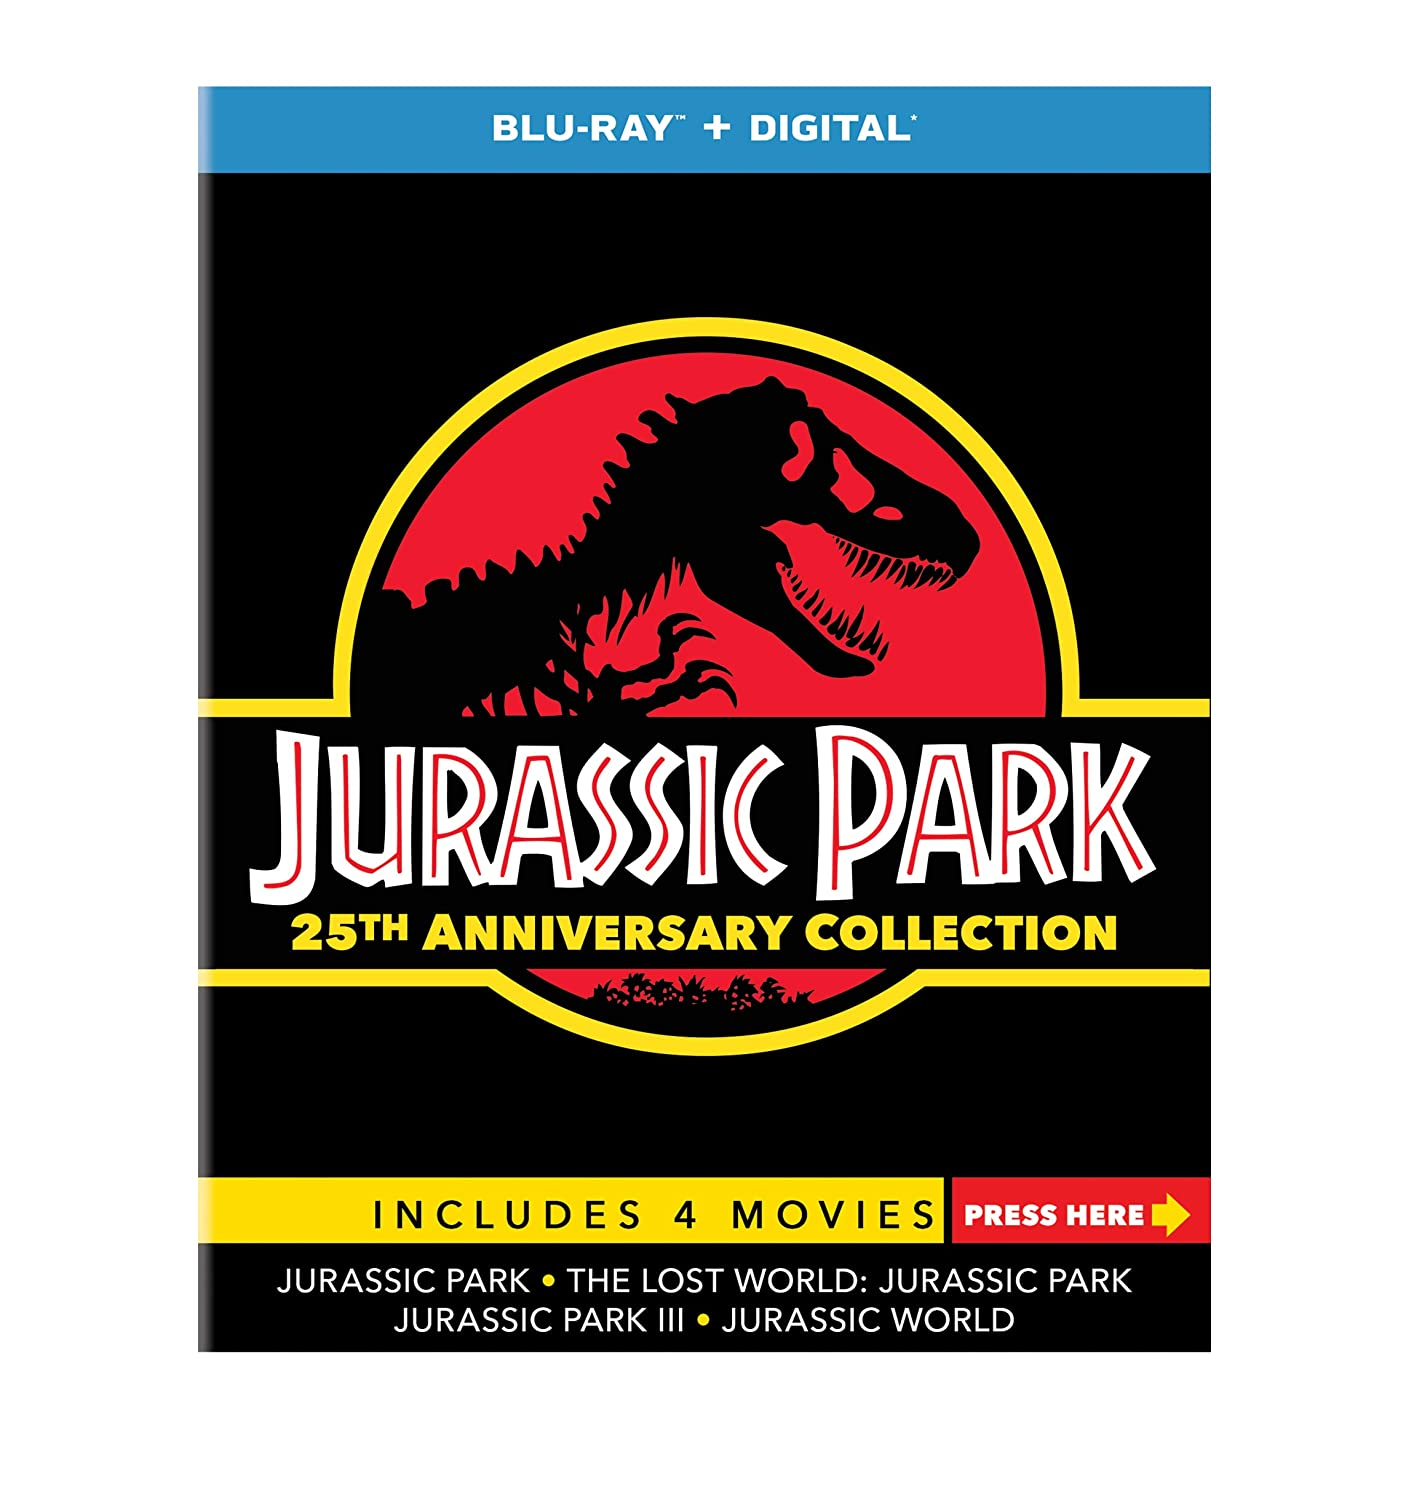 Jurassic Park 25th Anniversary Collection ONLY $21.99 (Reg. $45)